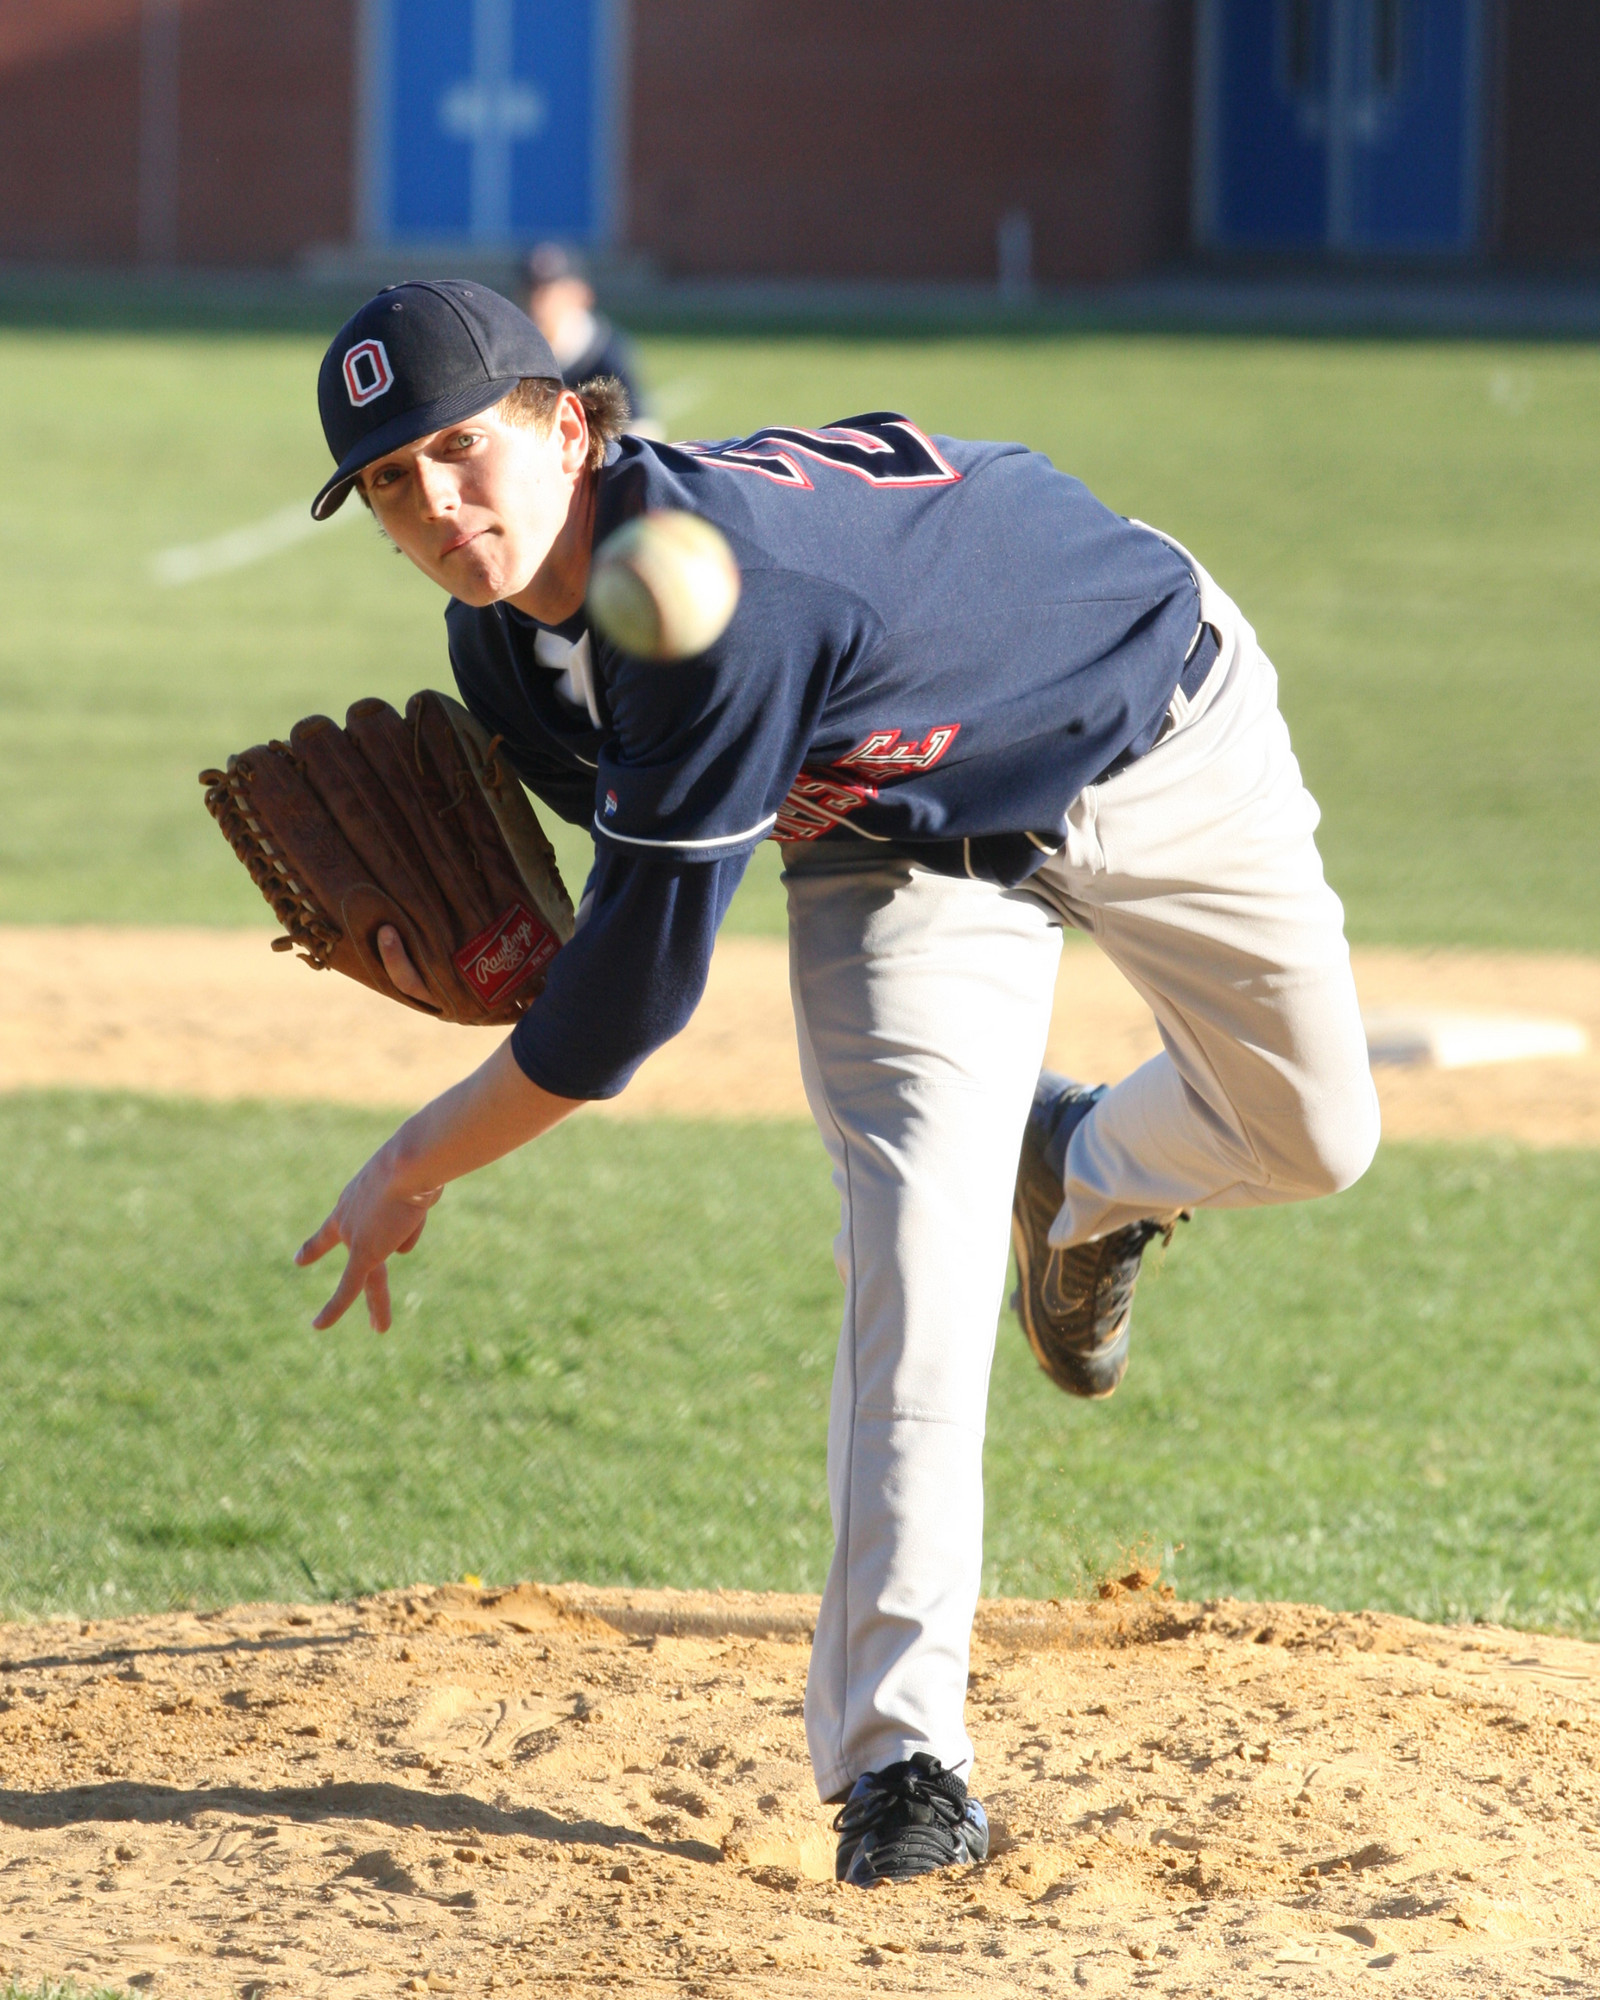 Junior Jake Santamaria fired a two-hitter May 2 at Baldwin as the Sailors completed a three-game sweep with a 3-1 victory.